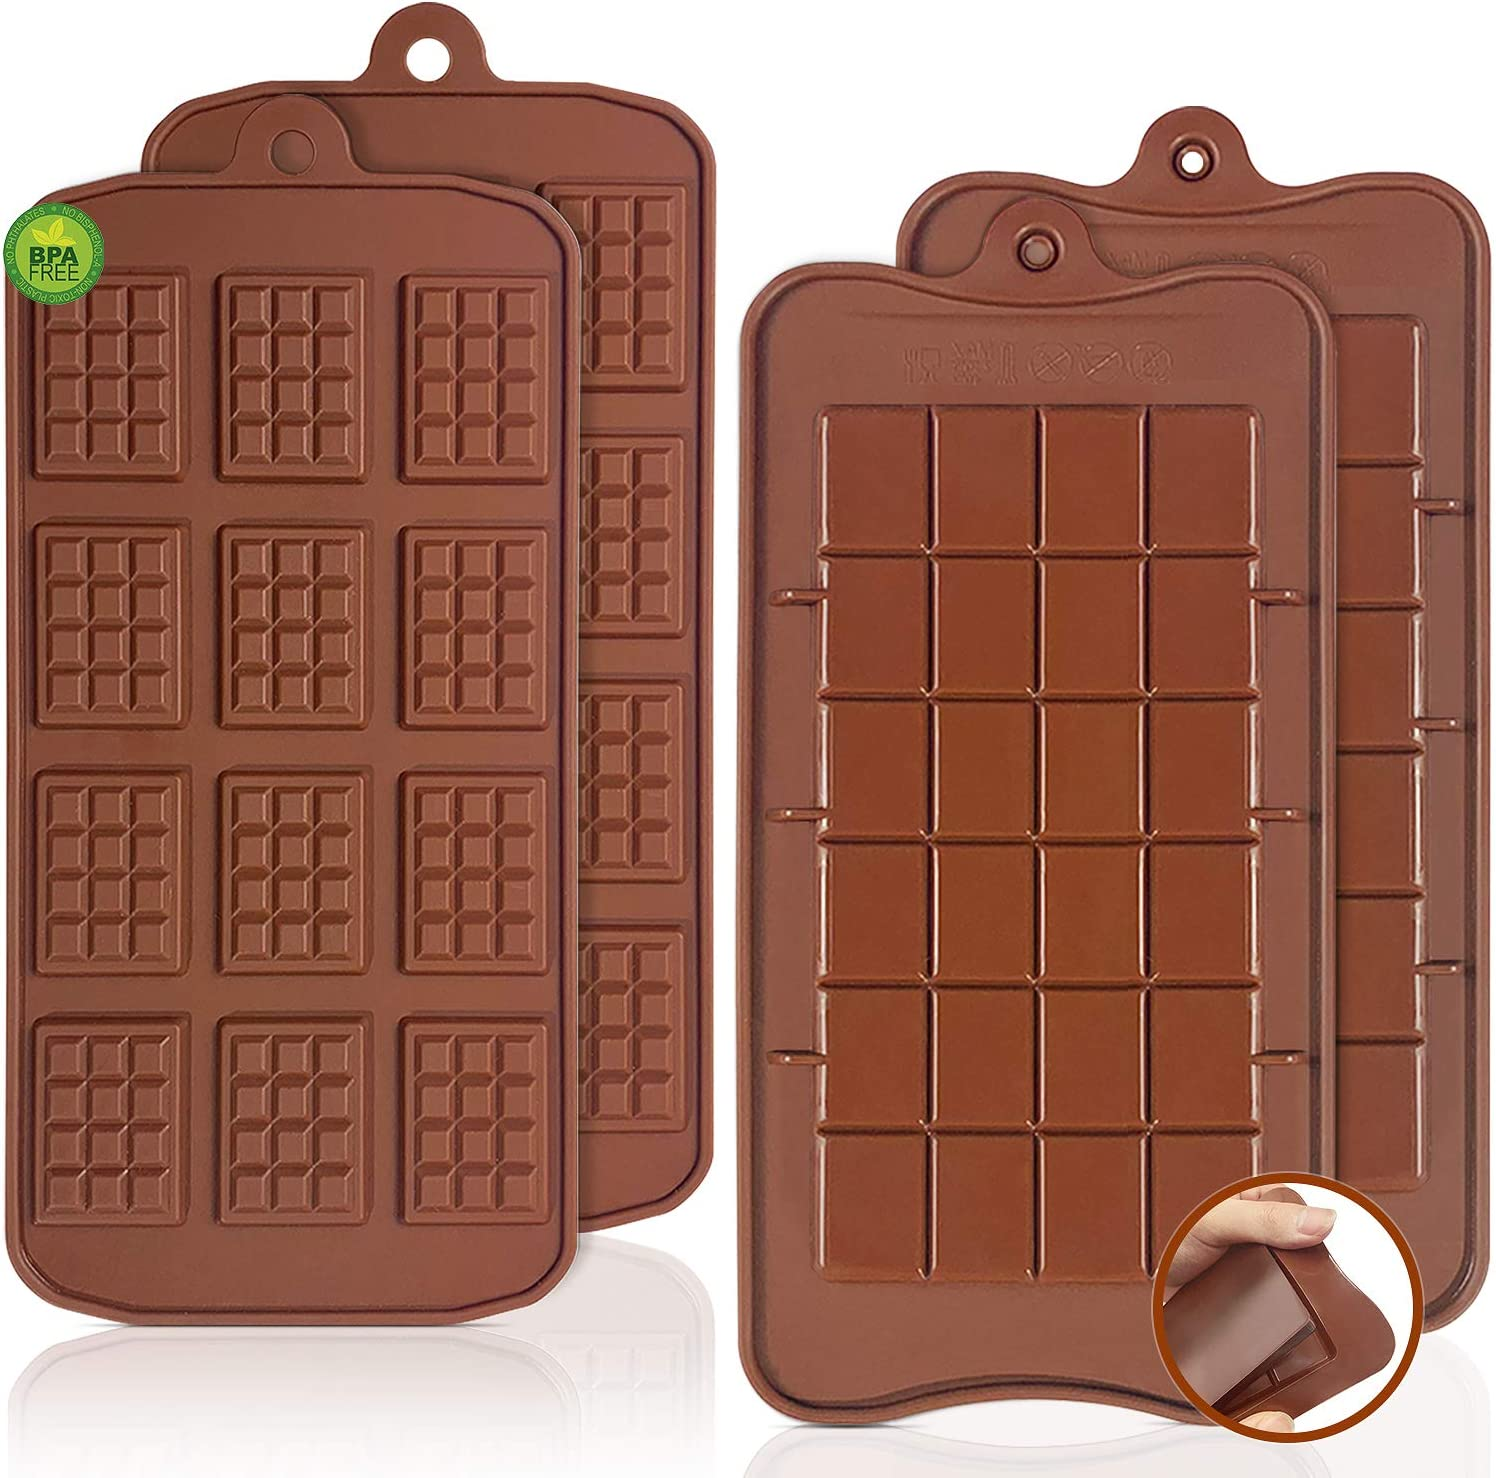 Break-Apart Chocolate, Walfos Food Grade Non-Stick Silicone chocolate waffle mold and Energy Bar chocolate Molds. 4 Packs